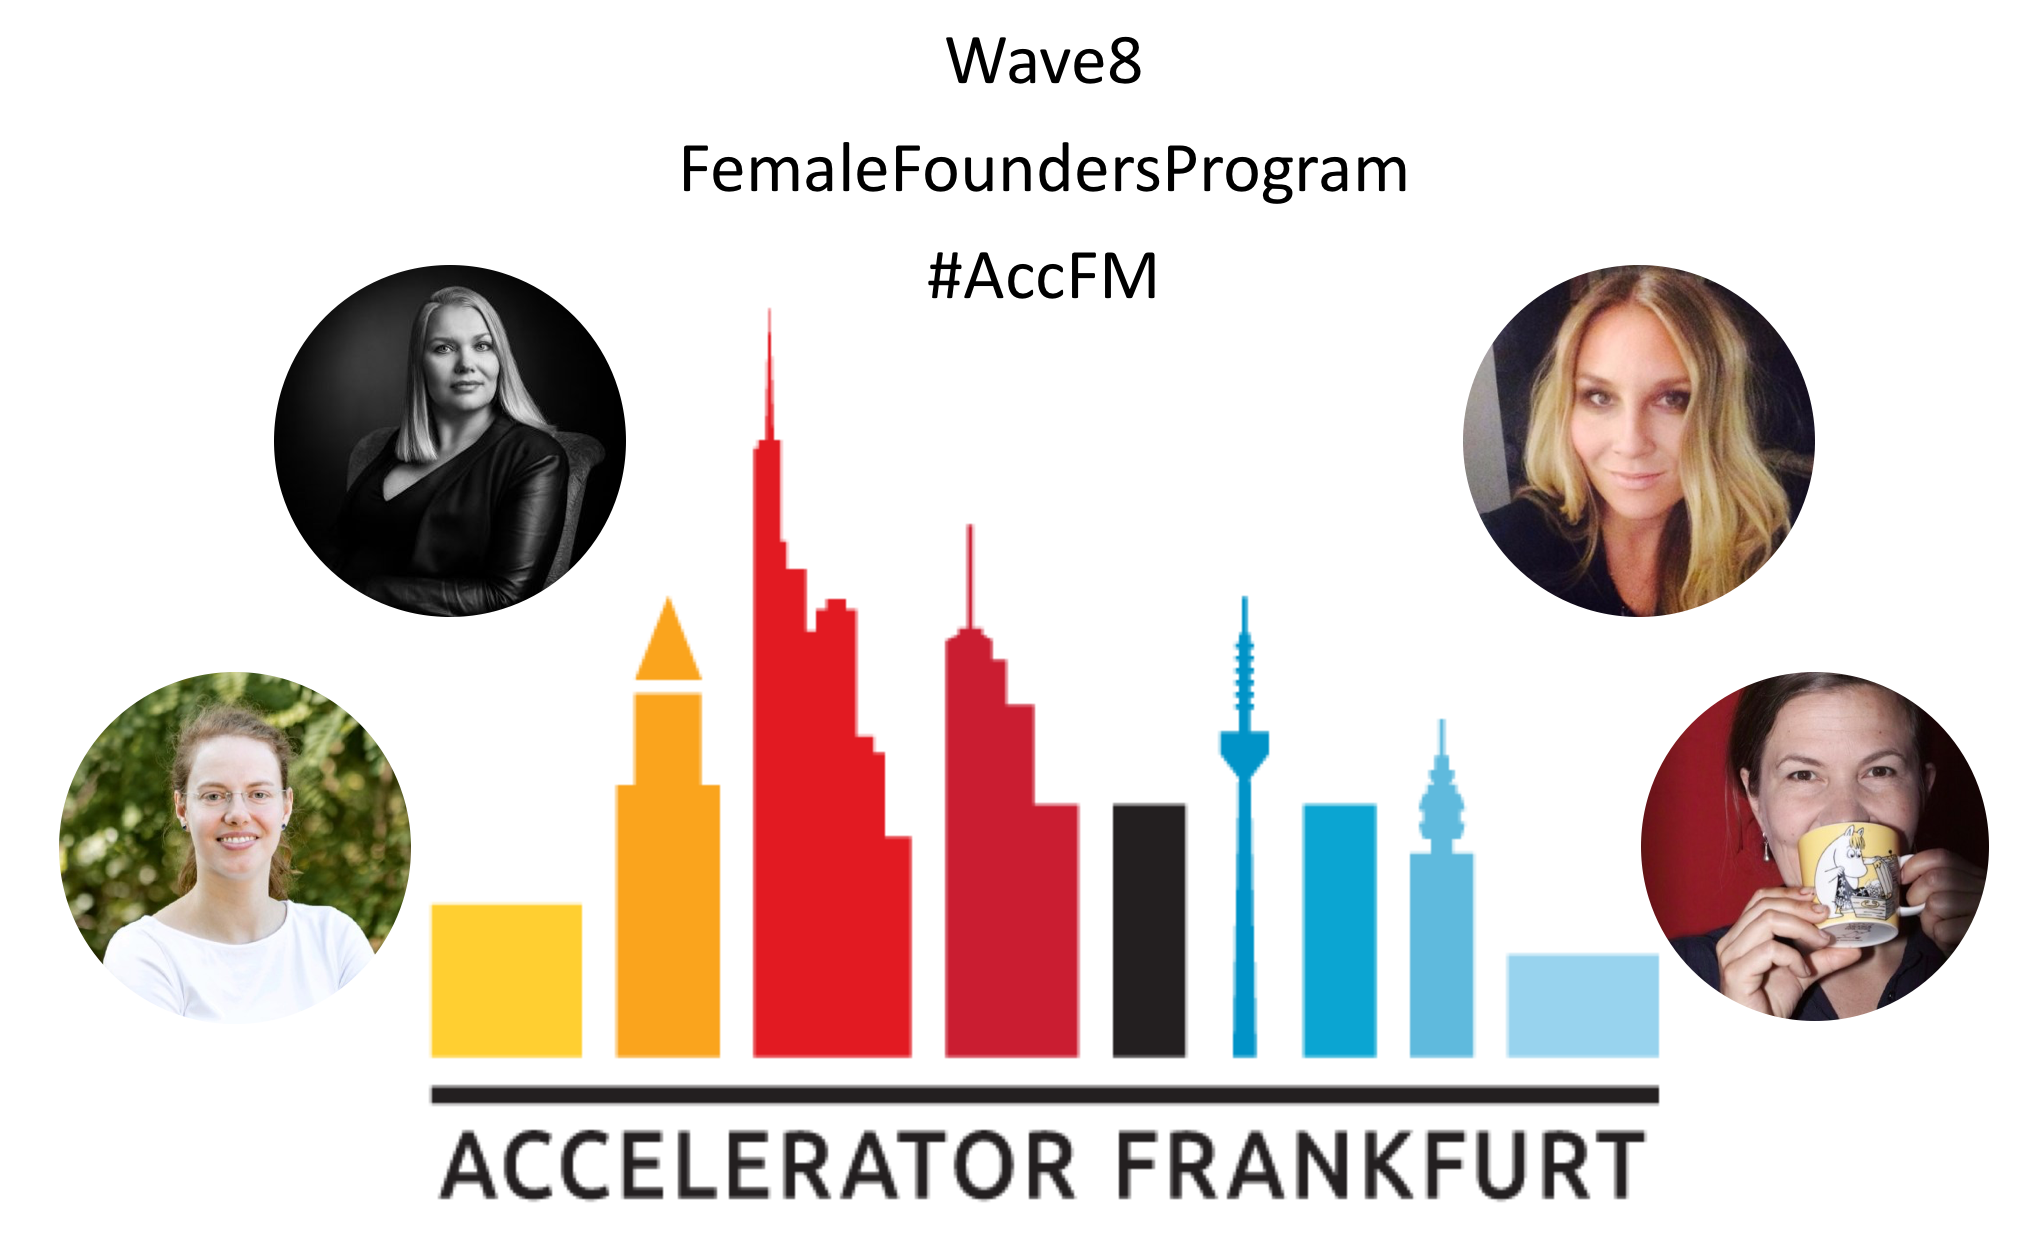 https://www.acceleratorfrankfurt.com/wp-content/uploads/2020/10/logo-Wave8-female.png